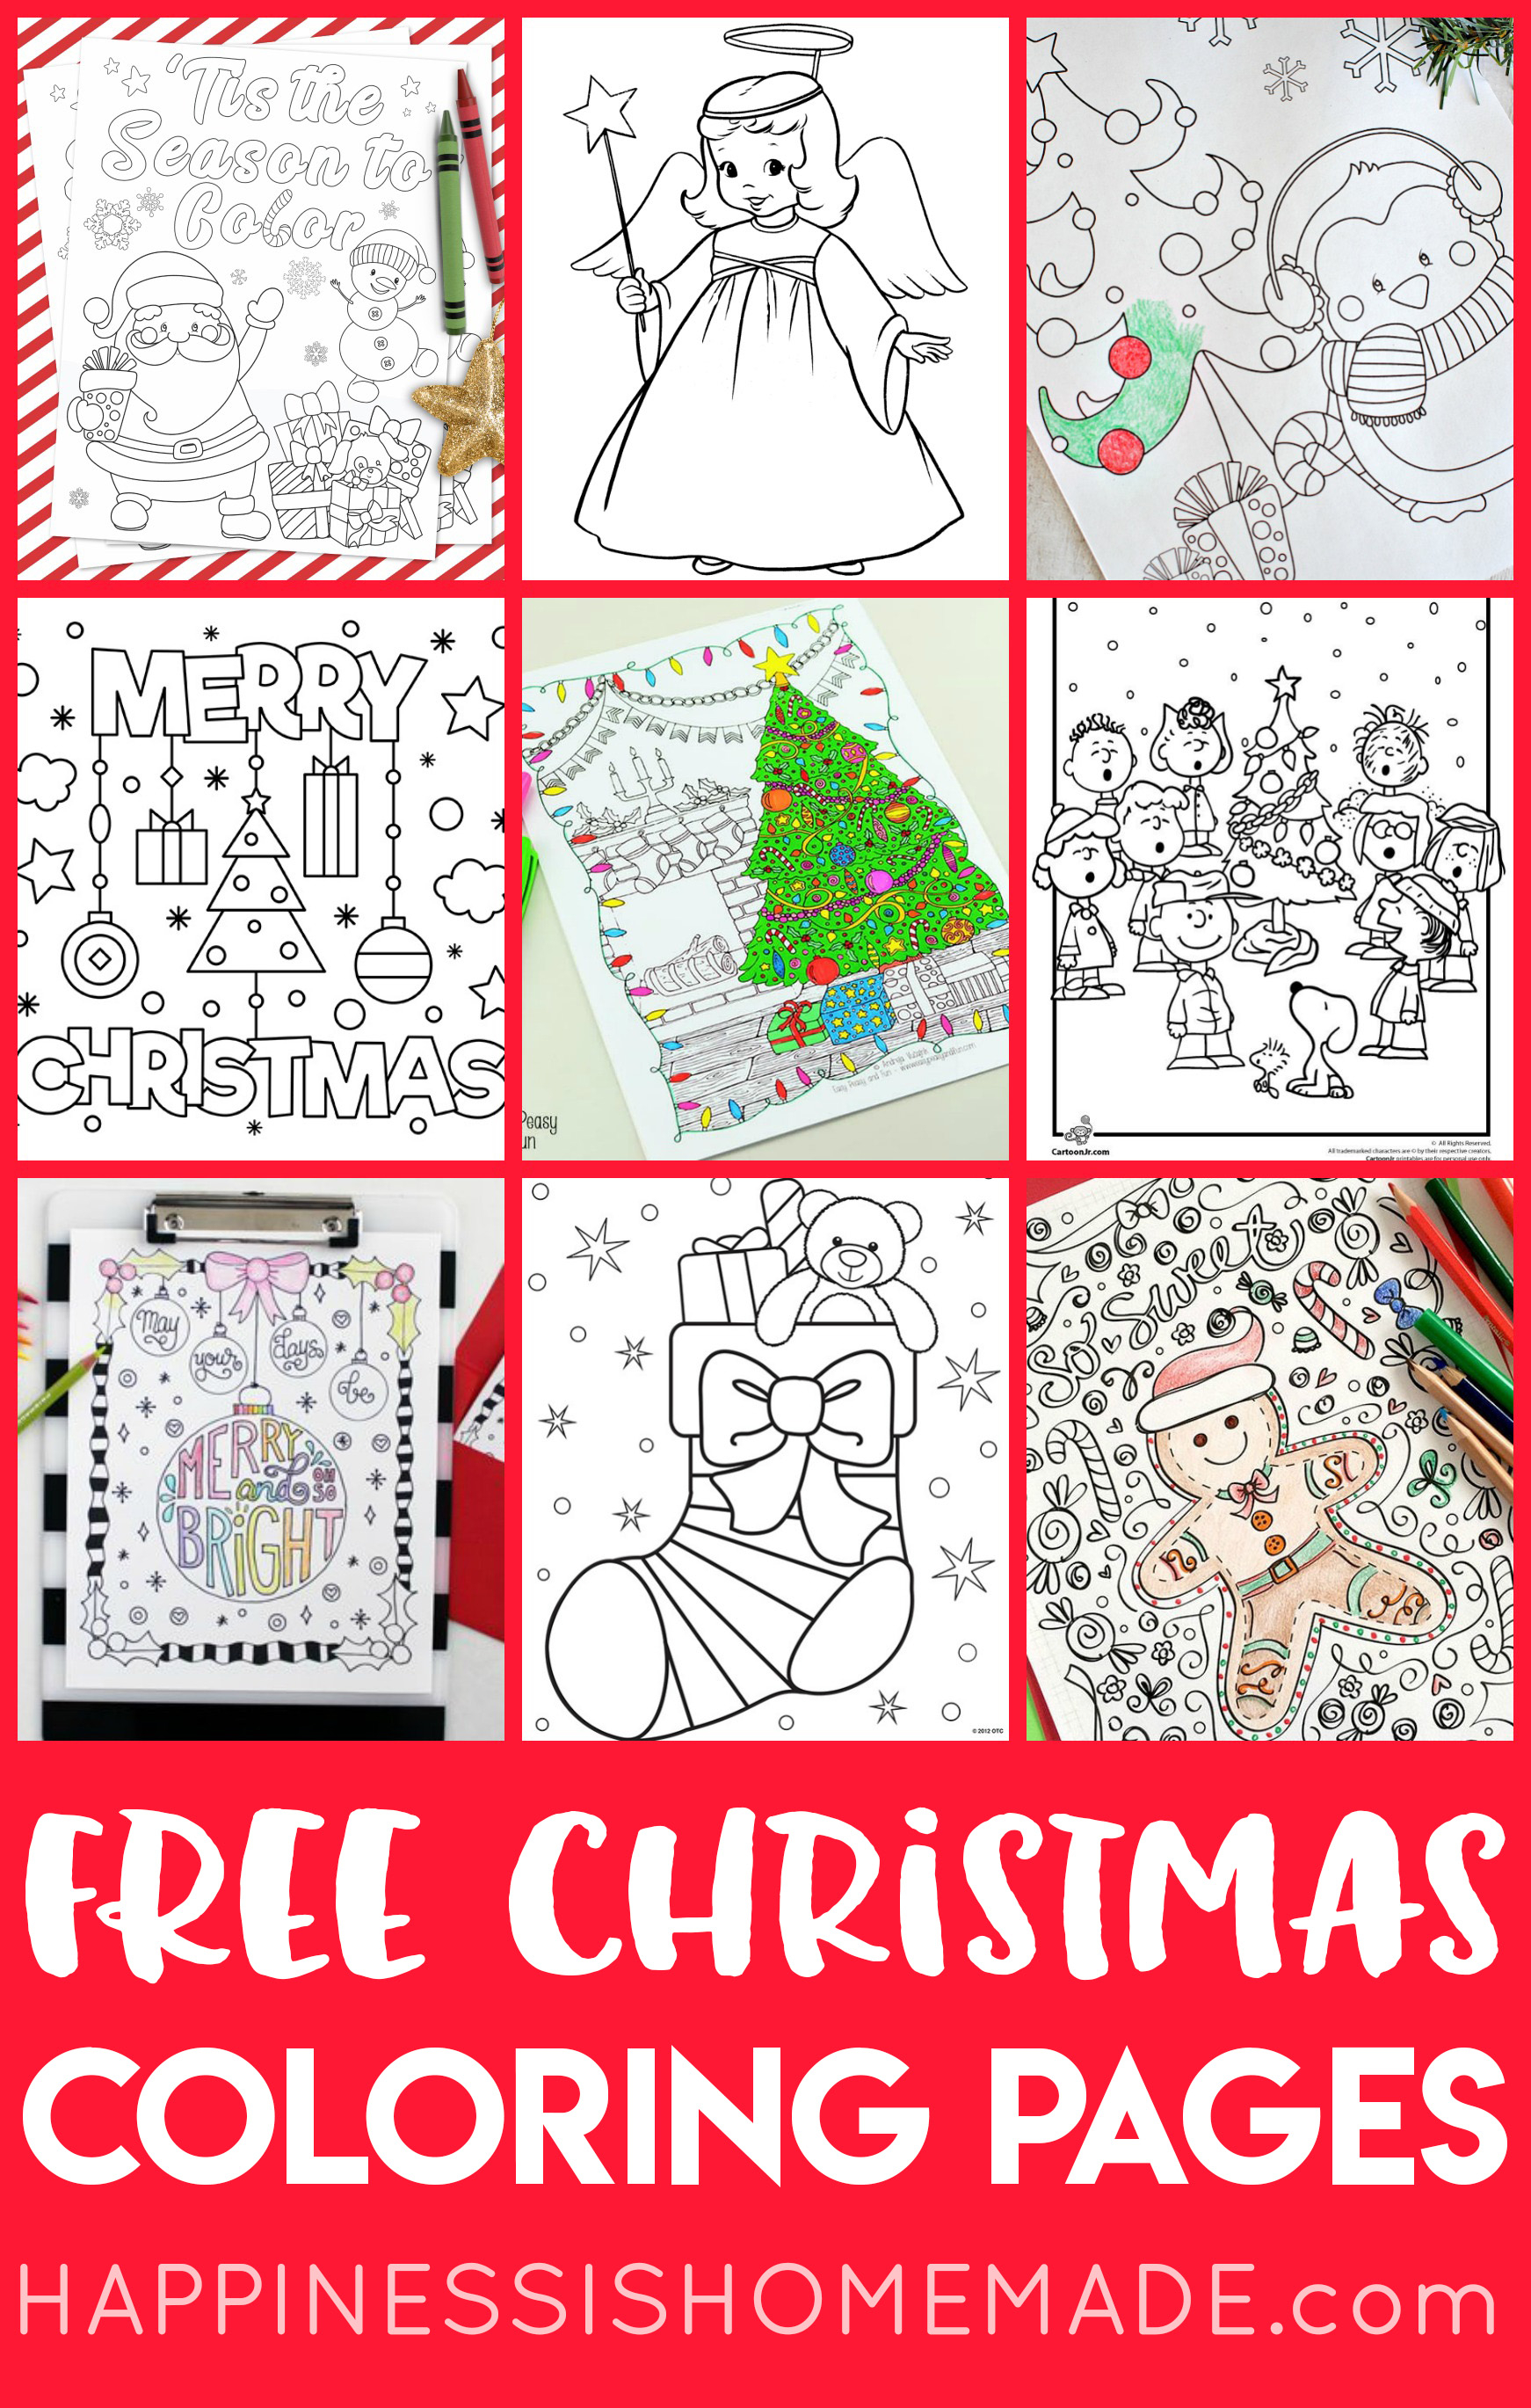 Christmas Color Pages For Kids Free Christmas Coloring Pages For Adults And Kids Happiness Is